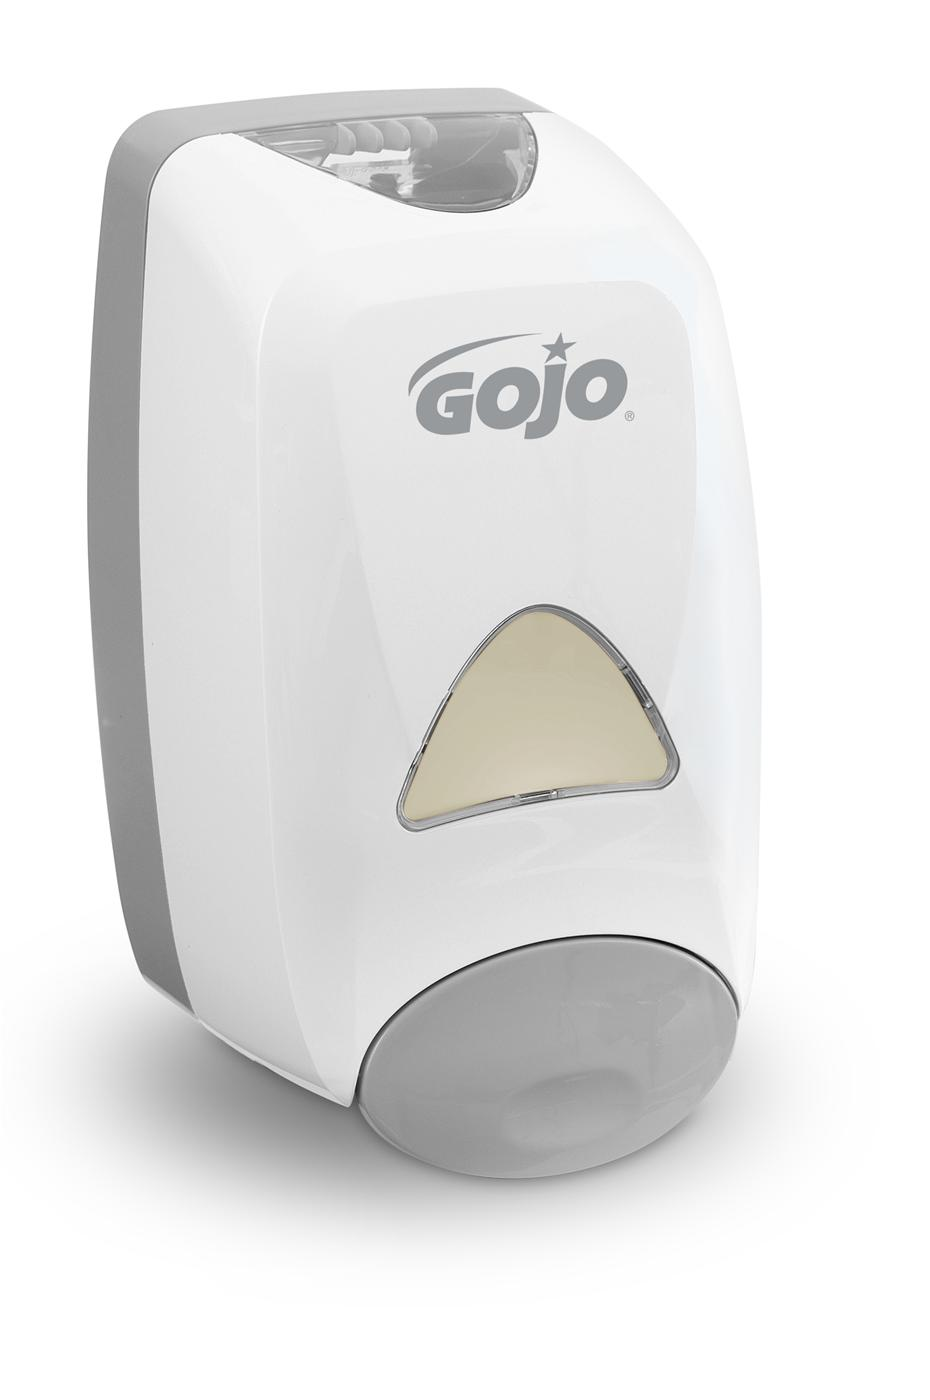 GOJO FMX Foam Soap Dispenser 5157-06